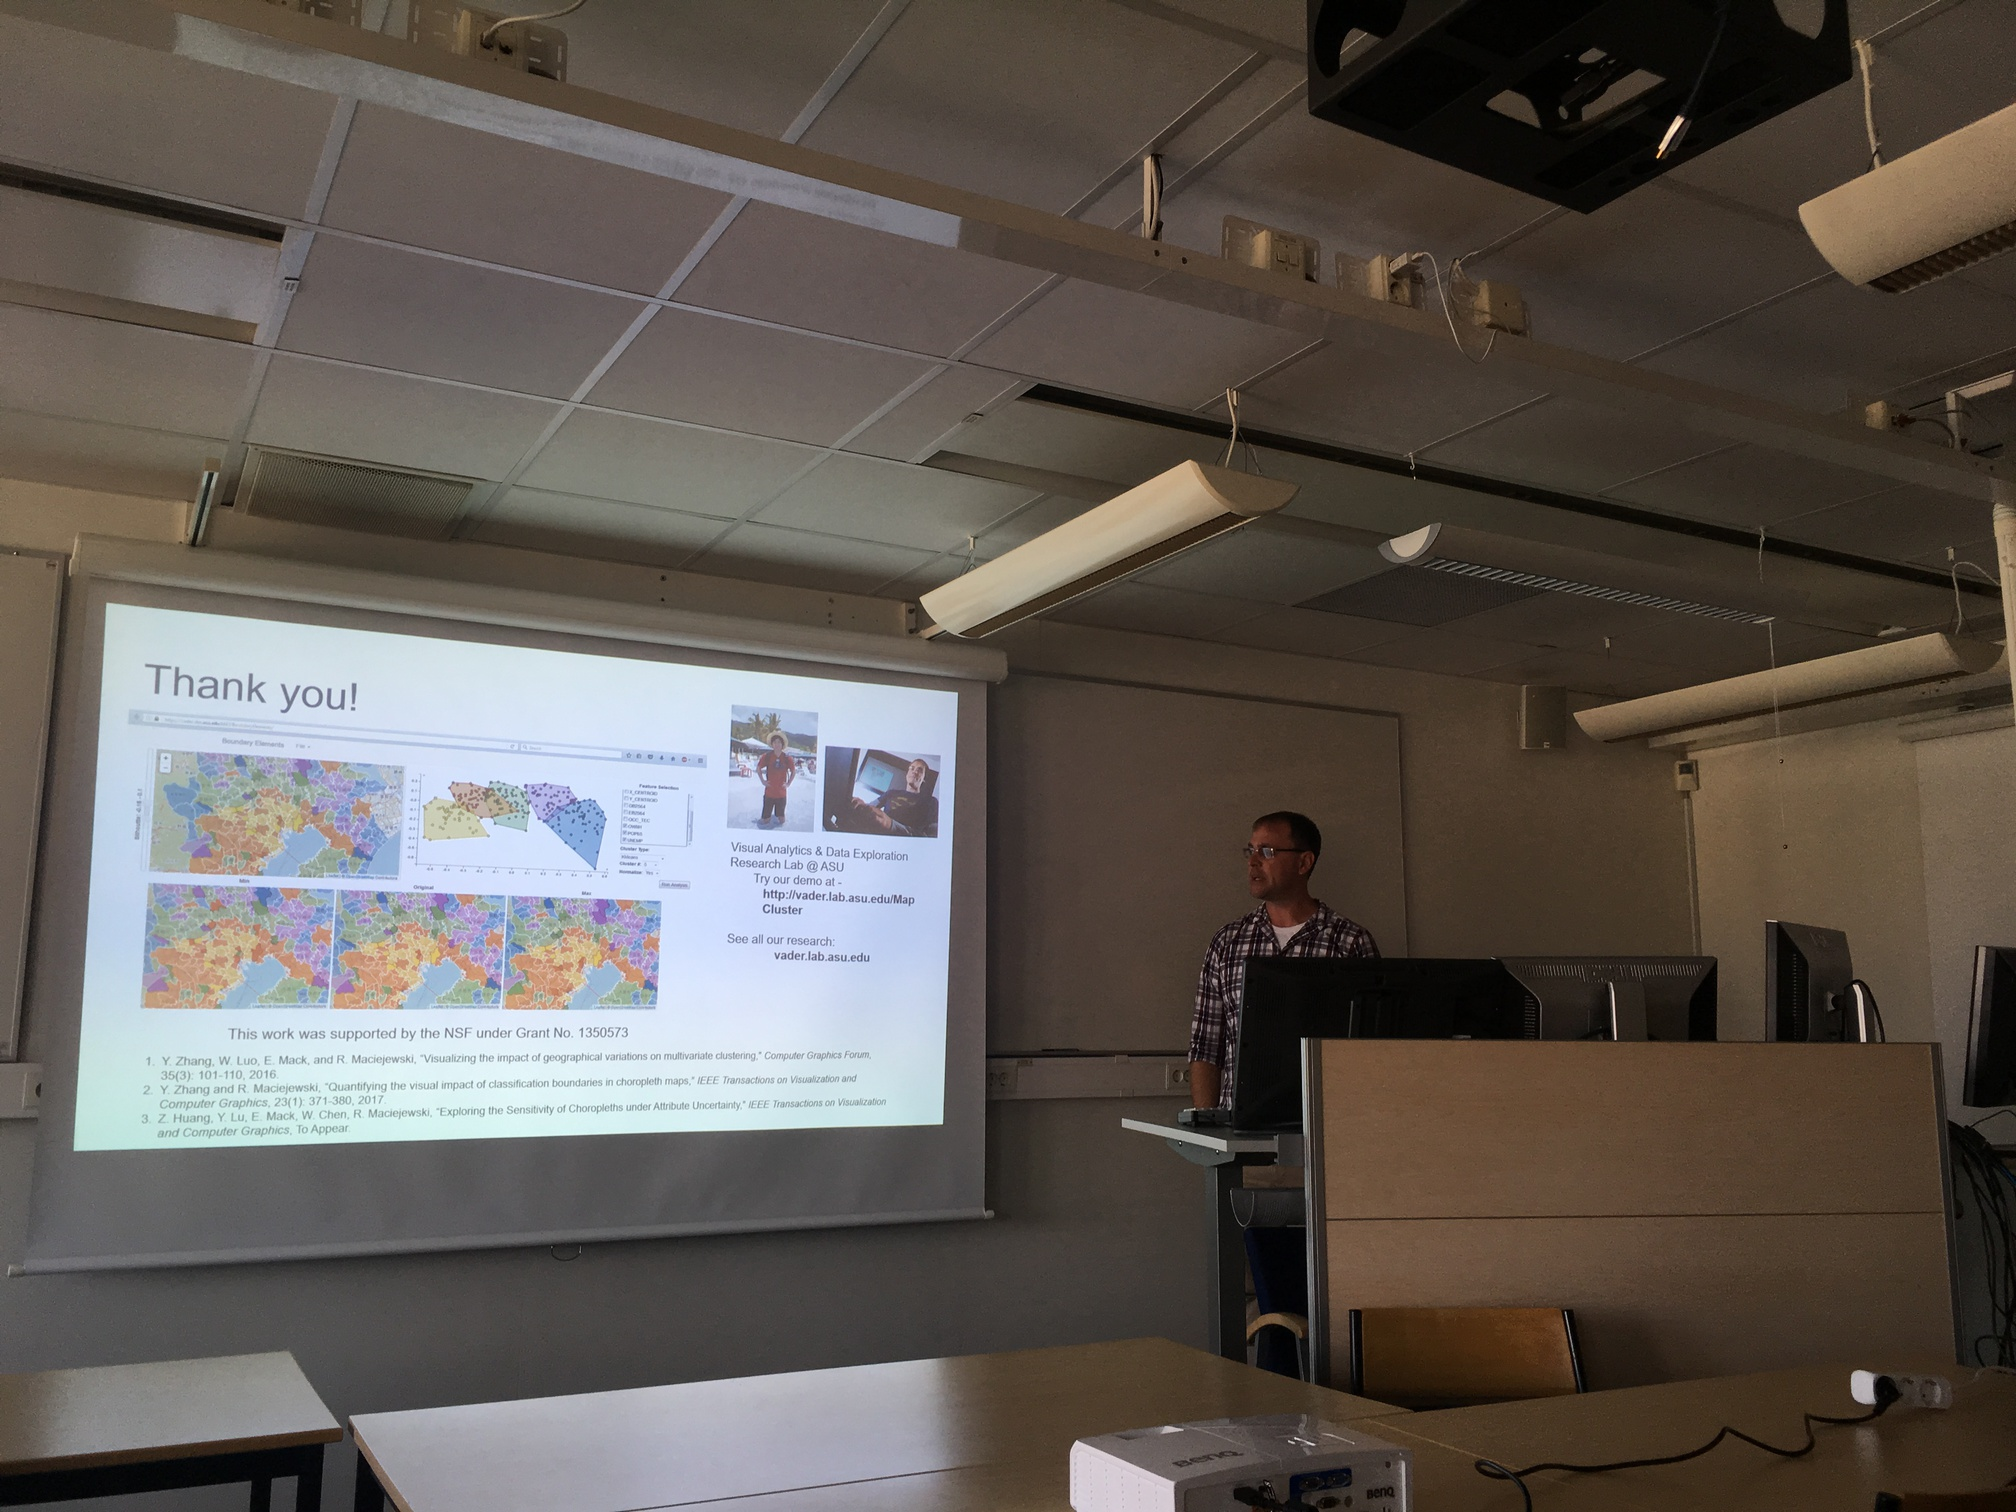 Ross Maciejewski's talk at LNU in April 2019